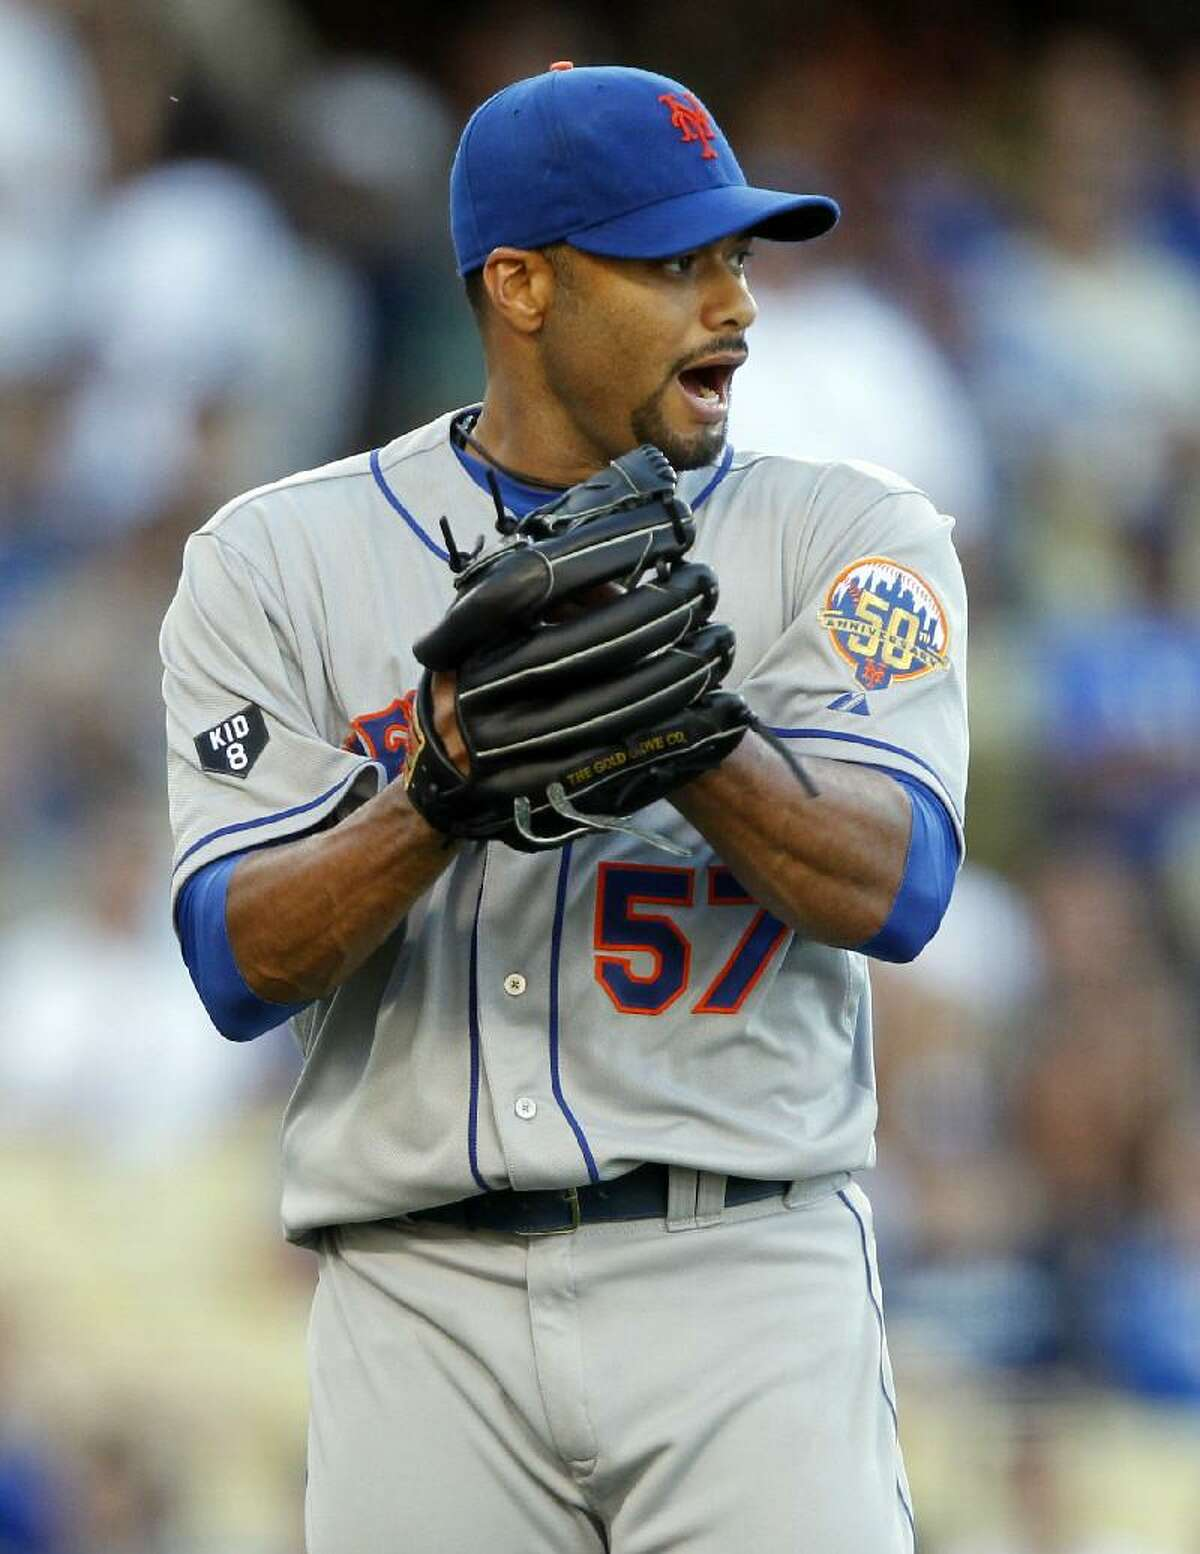 ASSOCIATED PRESS New York Mets starting pitcher Johan Santana (57) lets out a yell after Los Angeles Dodgers' Dee Gordon (not pictured) grounds out to end the eighth inning of Saturday's game in Los Angeles. The Mets won 5-0.